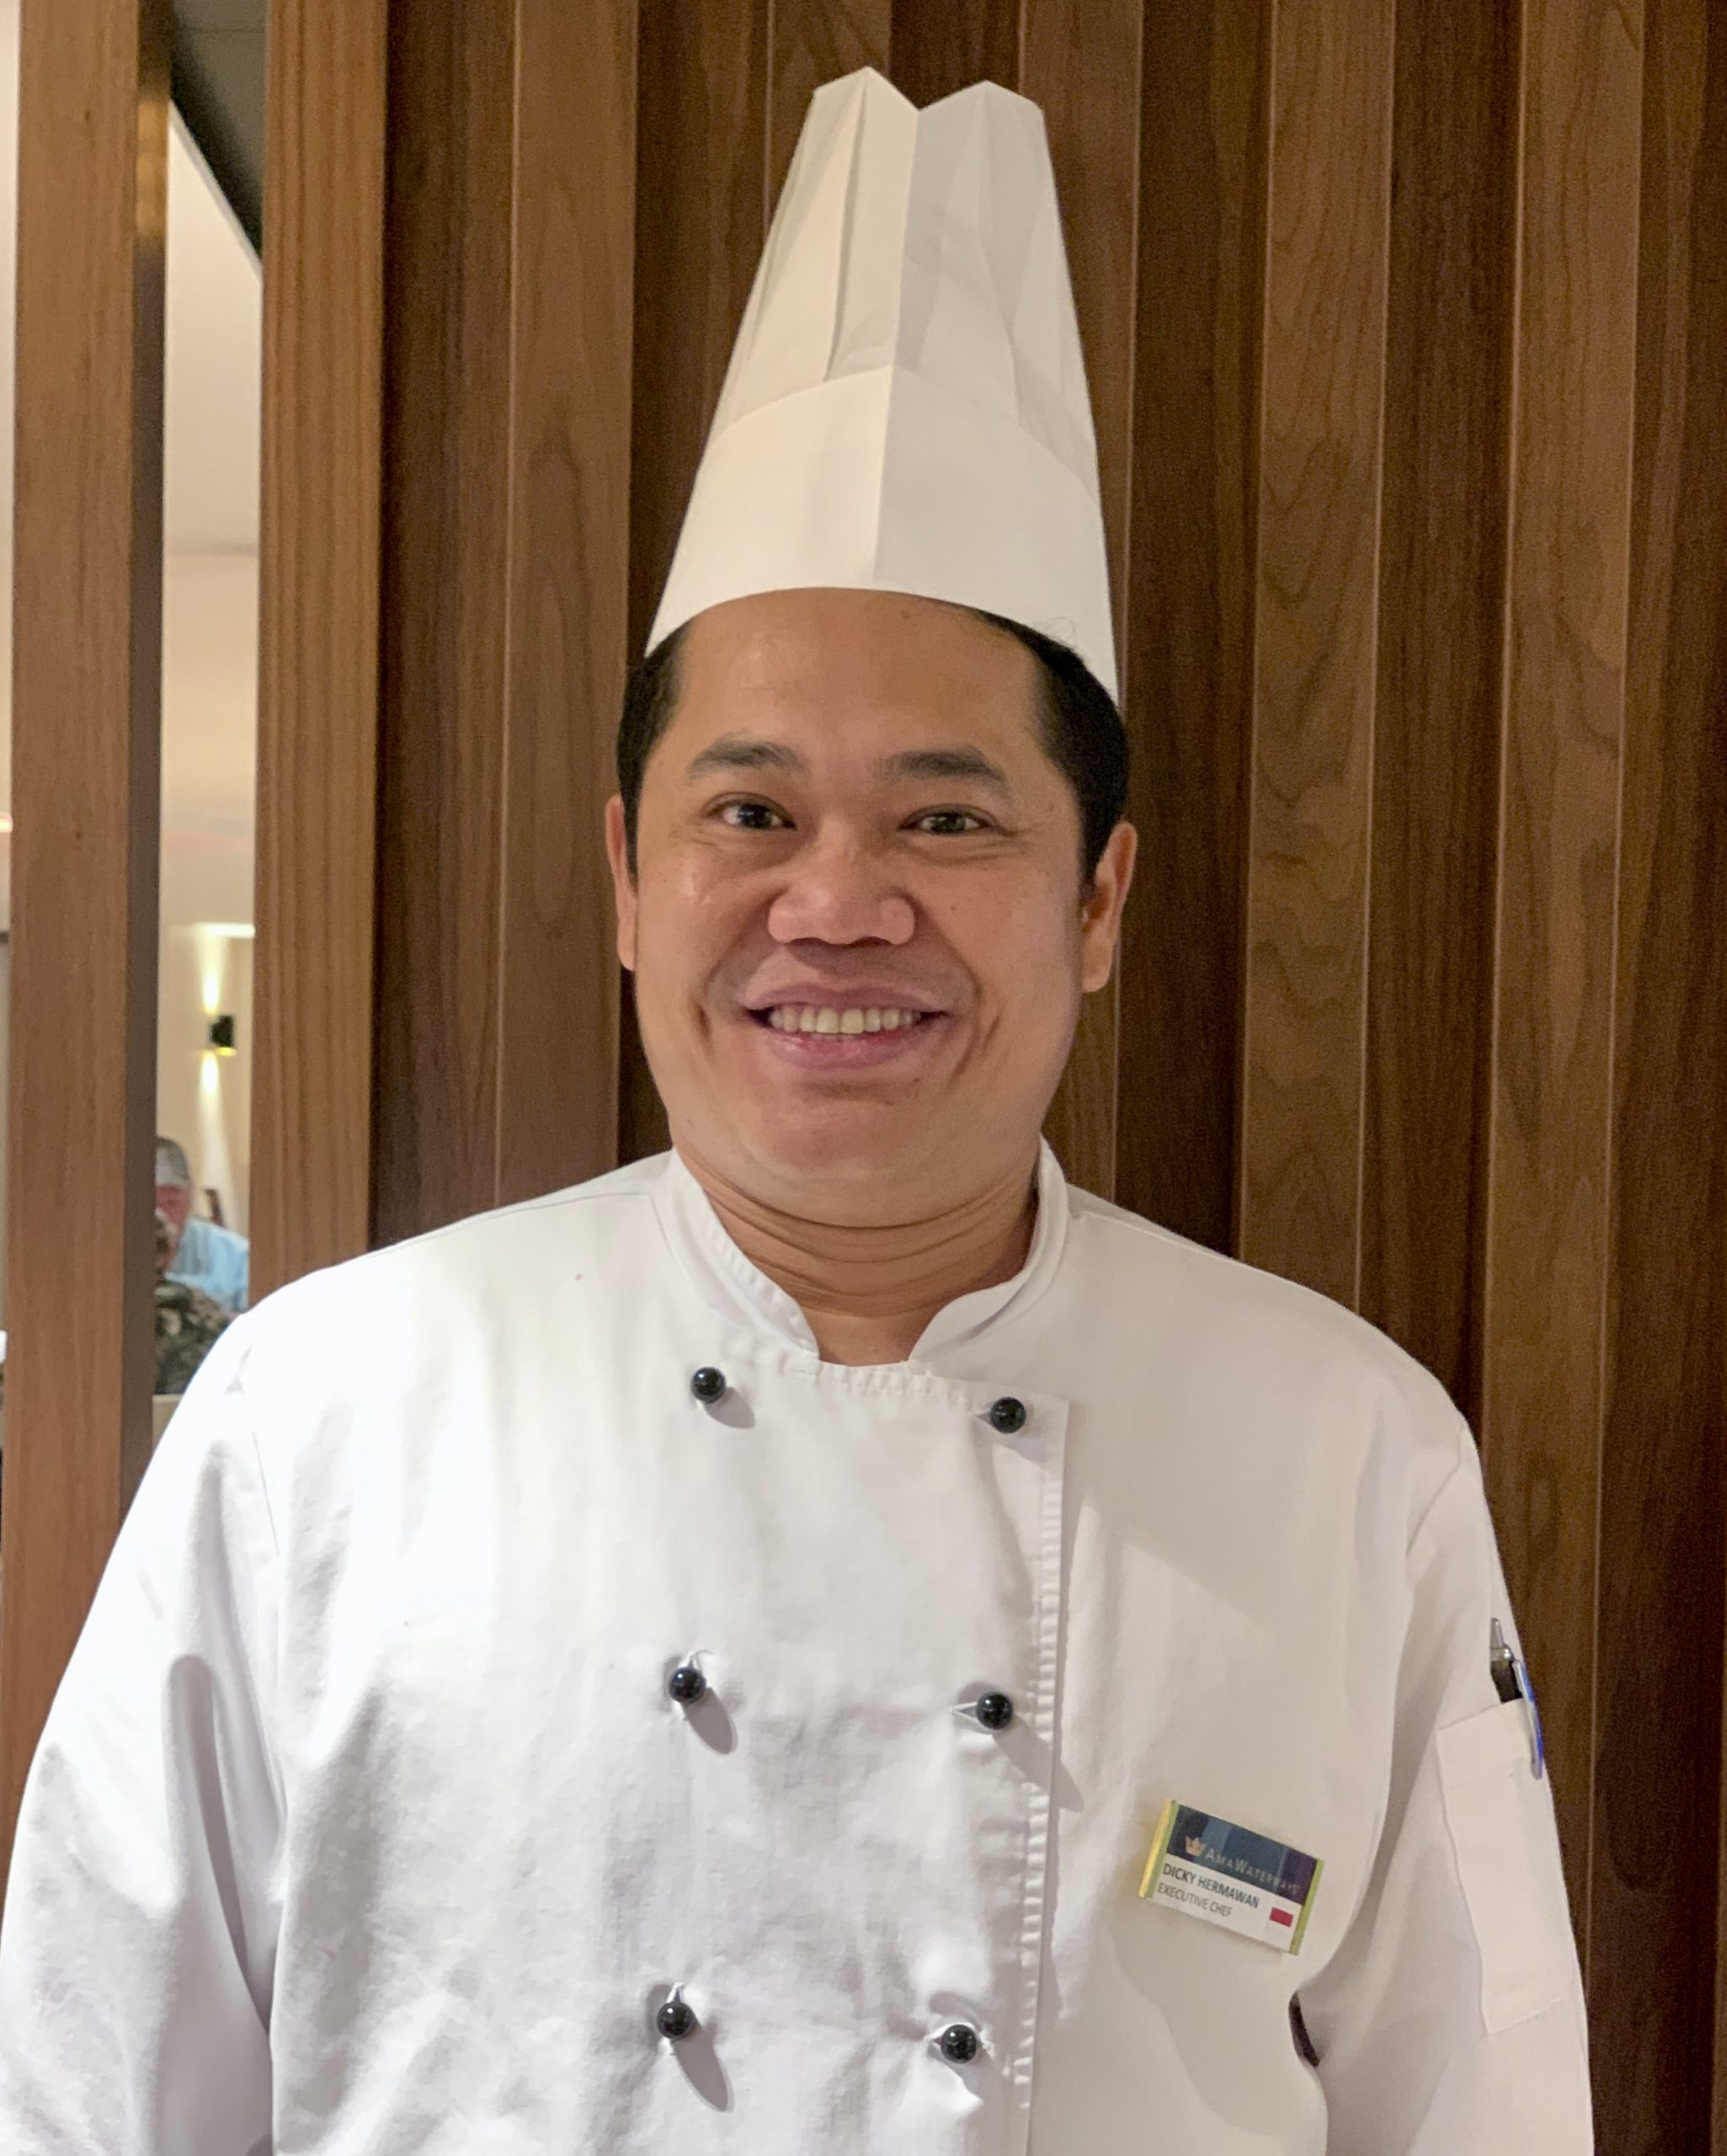 Executive Chef Dicky